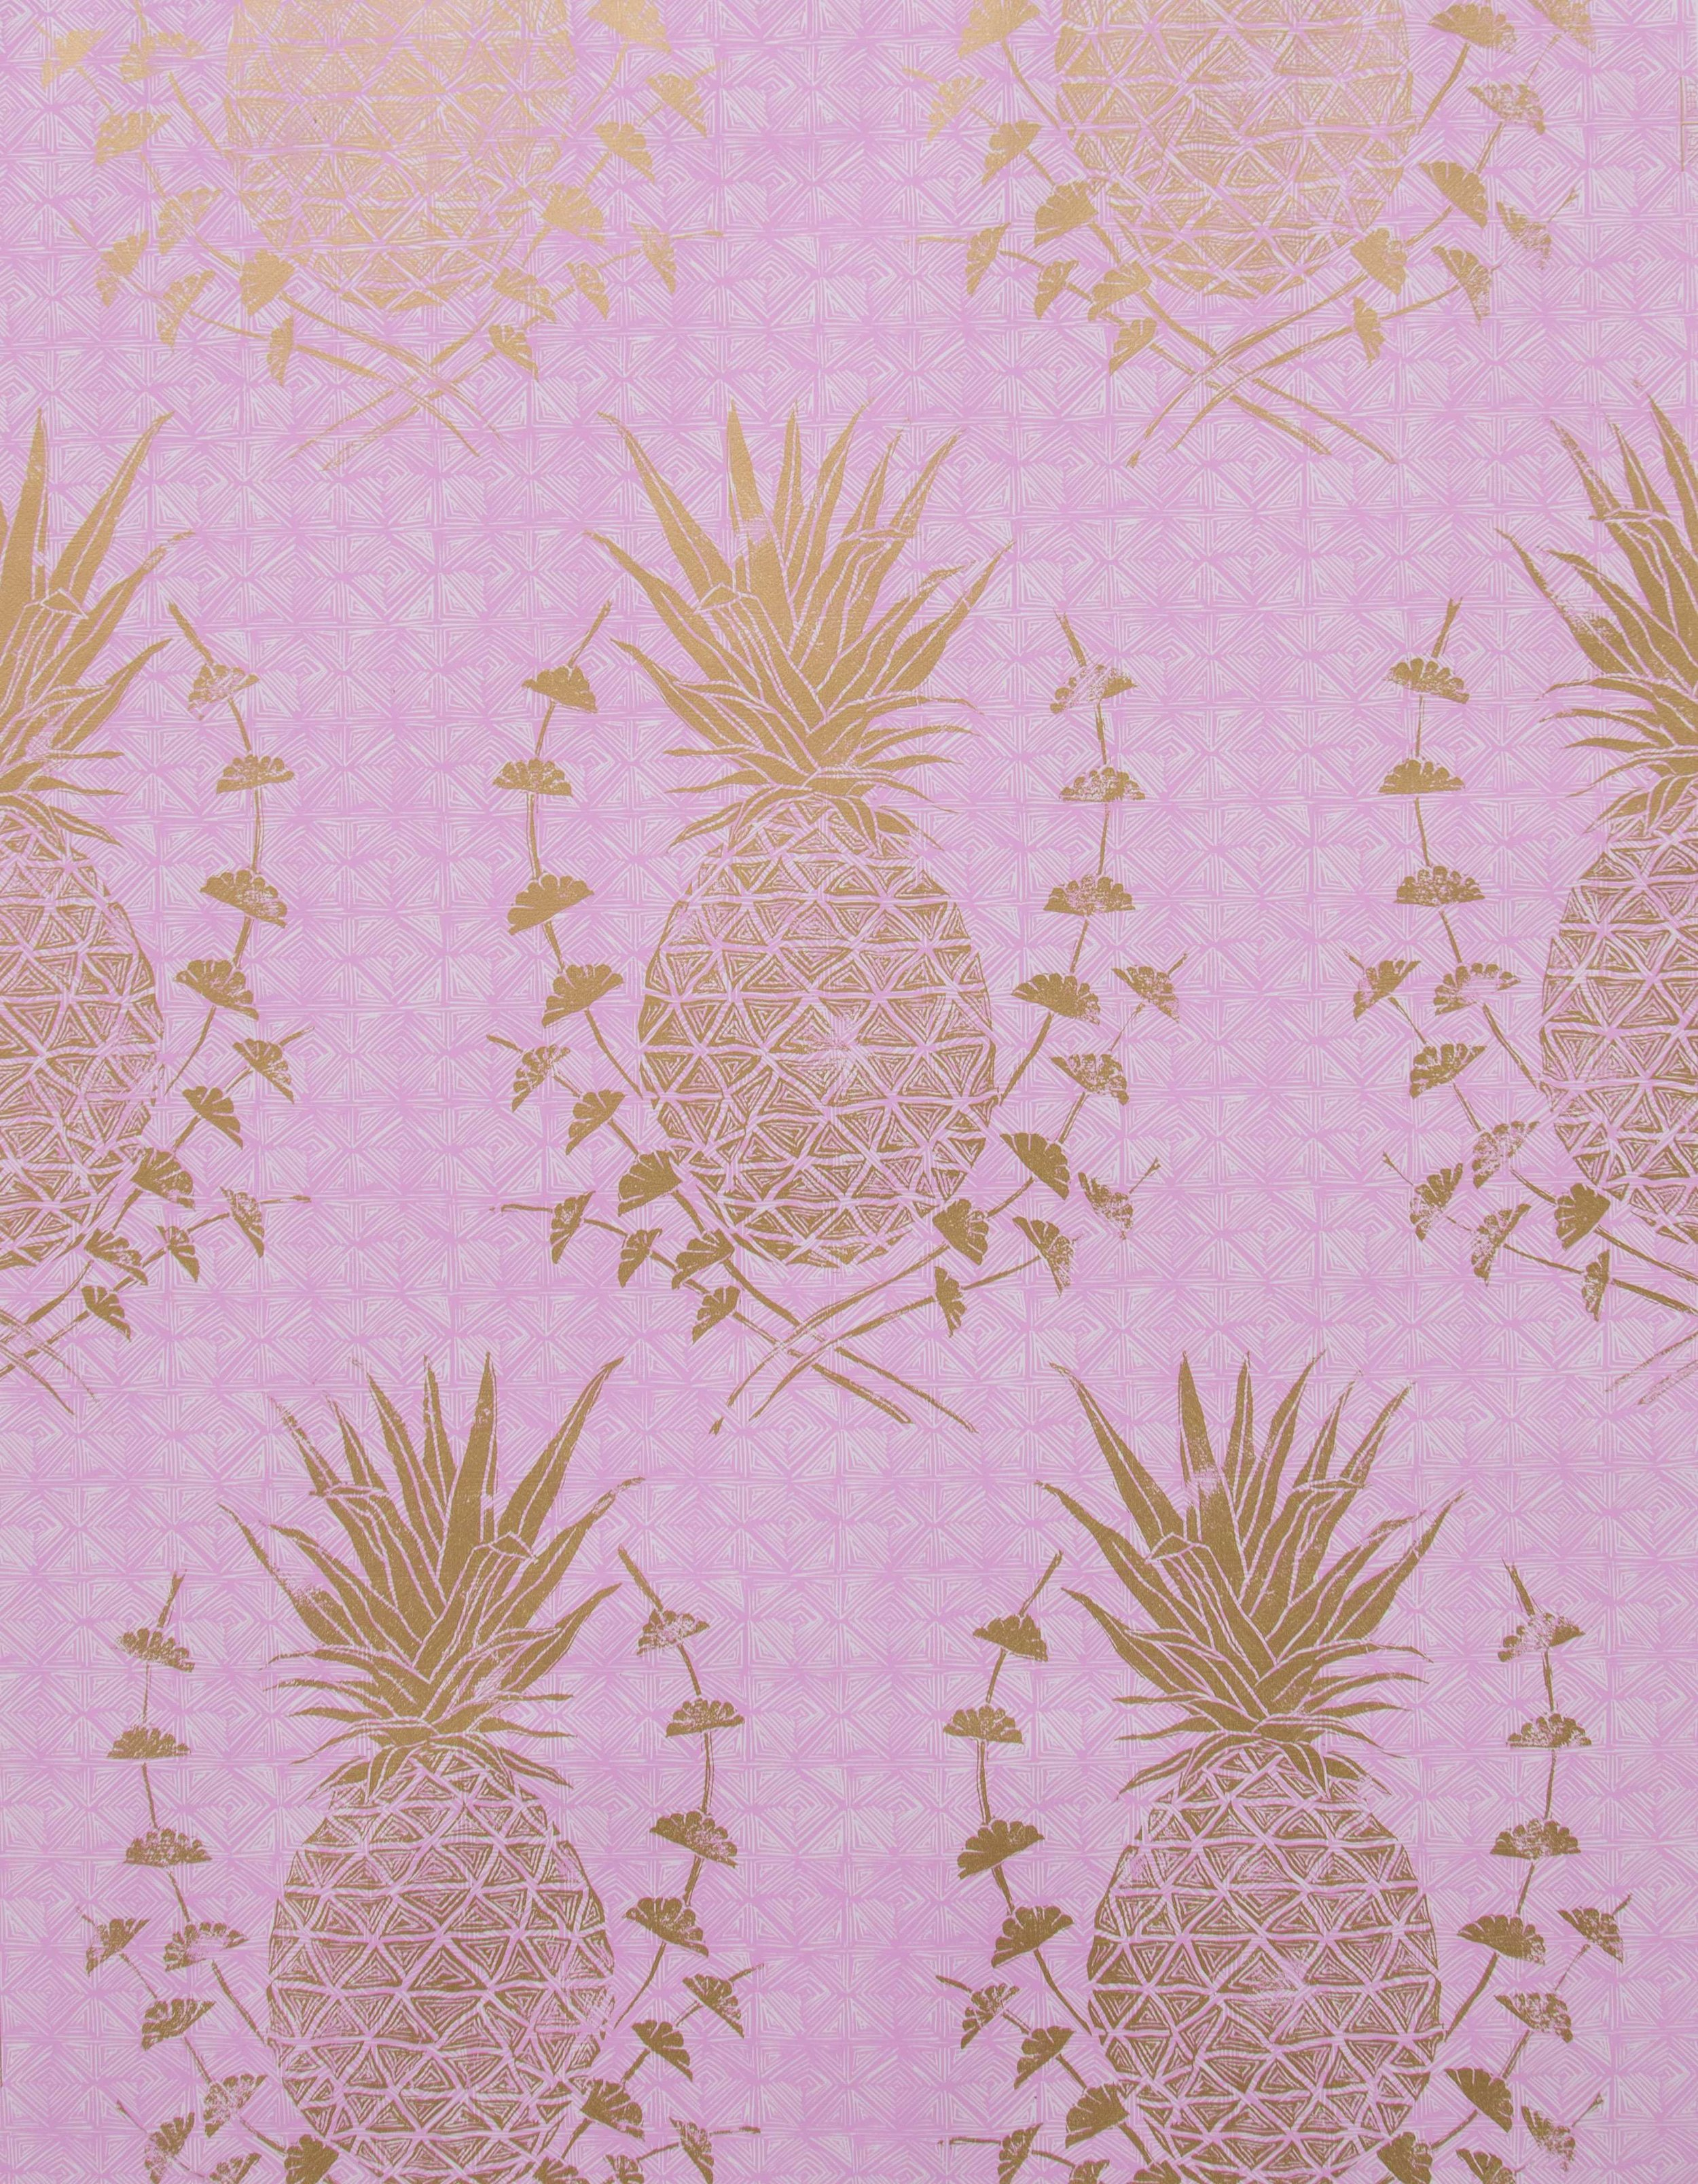 Royal Pineapple in Pink, SL210-01